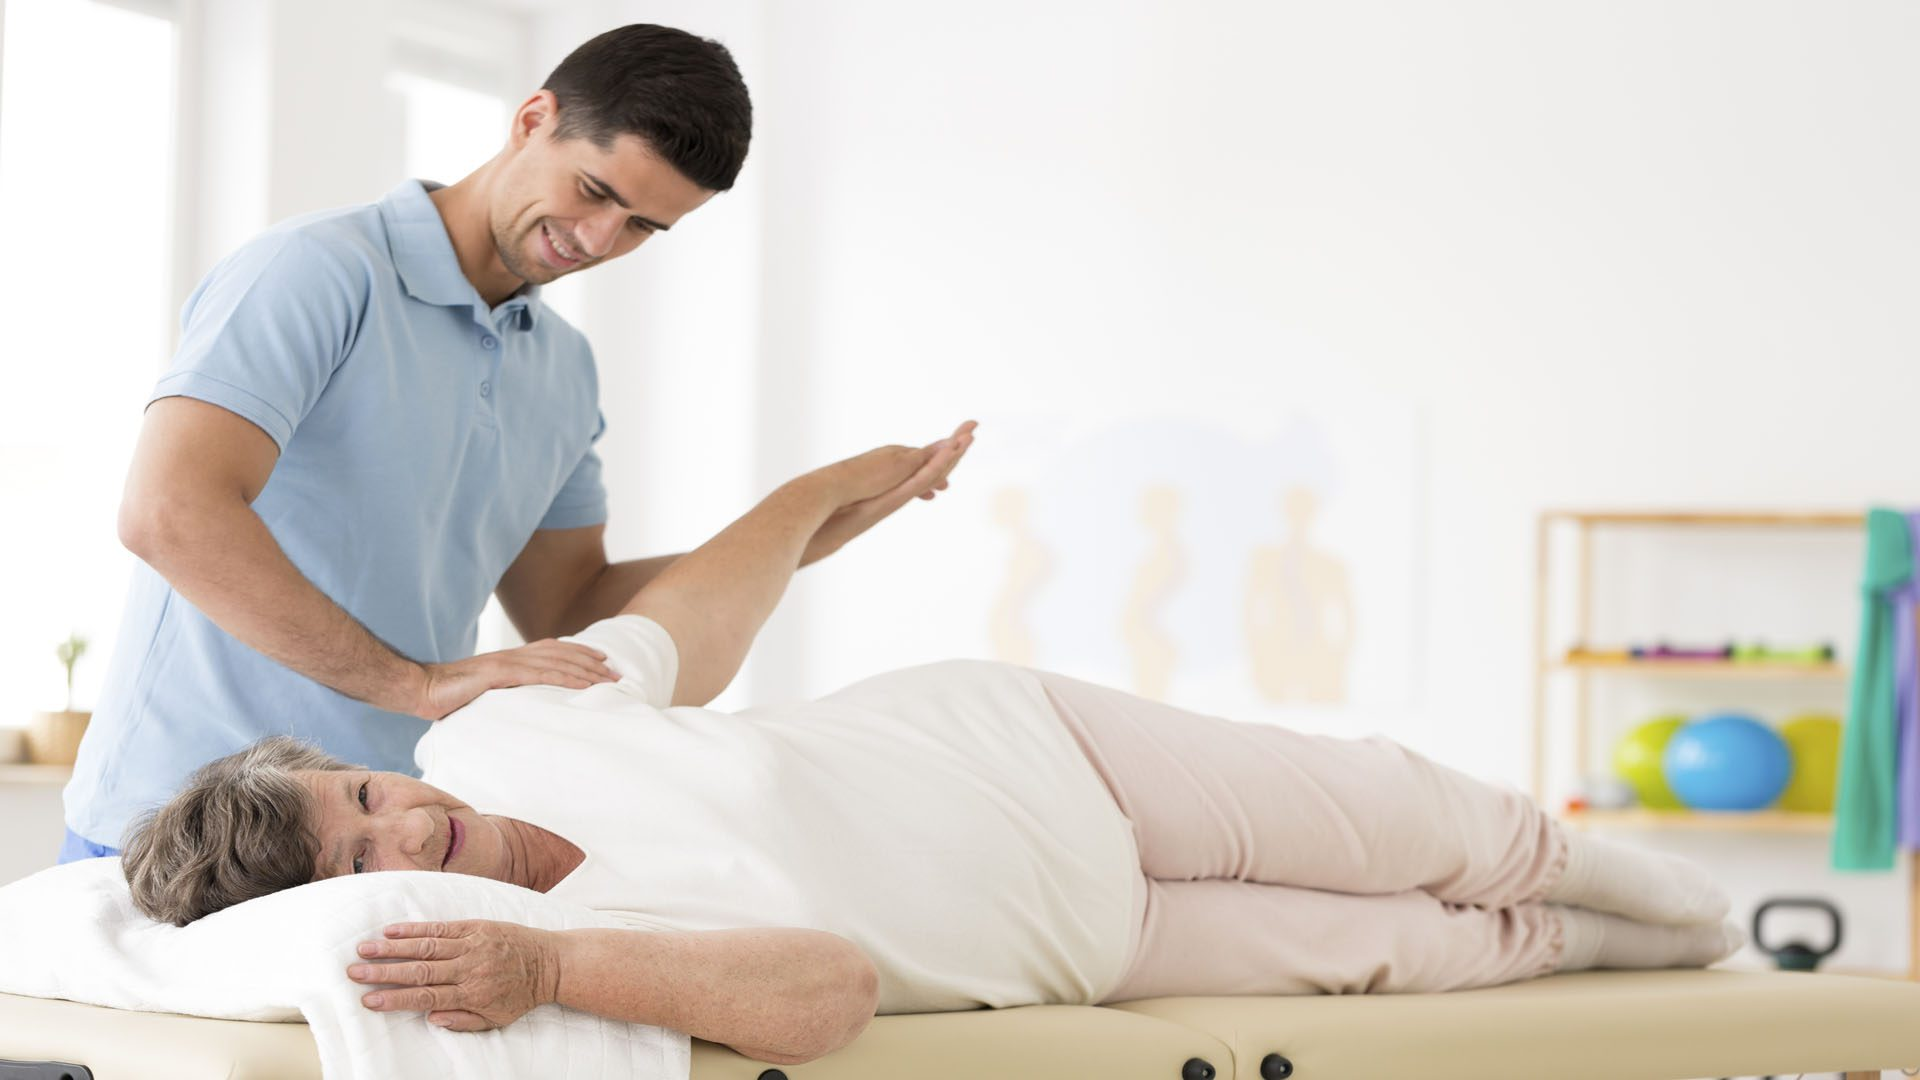 why chiropractic joint pain rehabilitation works El Paso, Texas